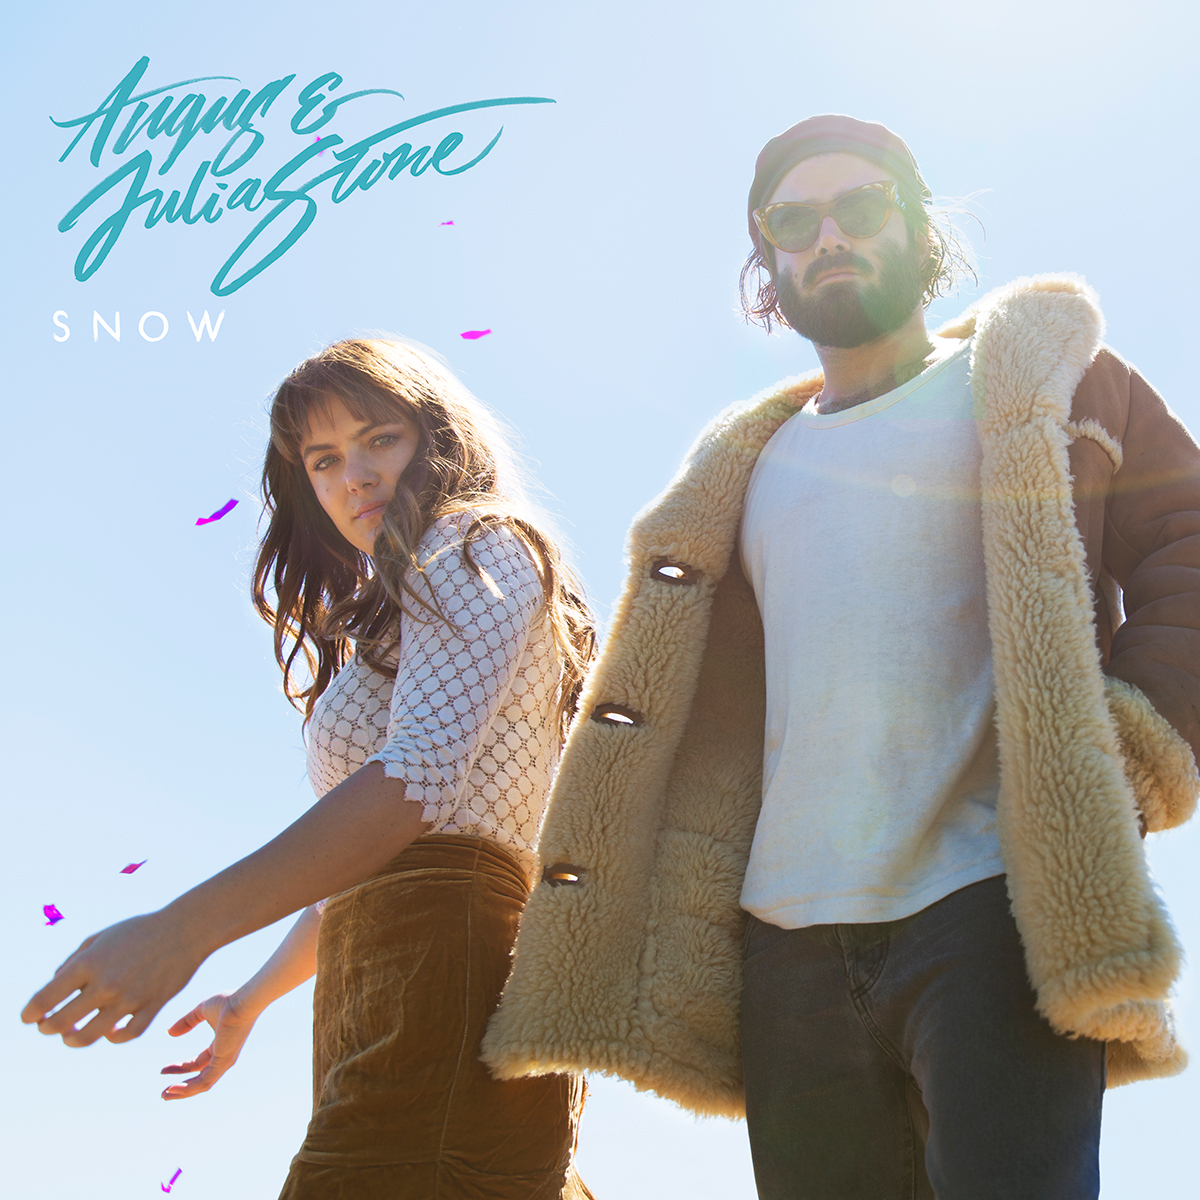 cover-SNOW-album ; Angus & Julia Stone